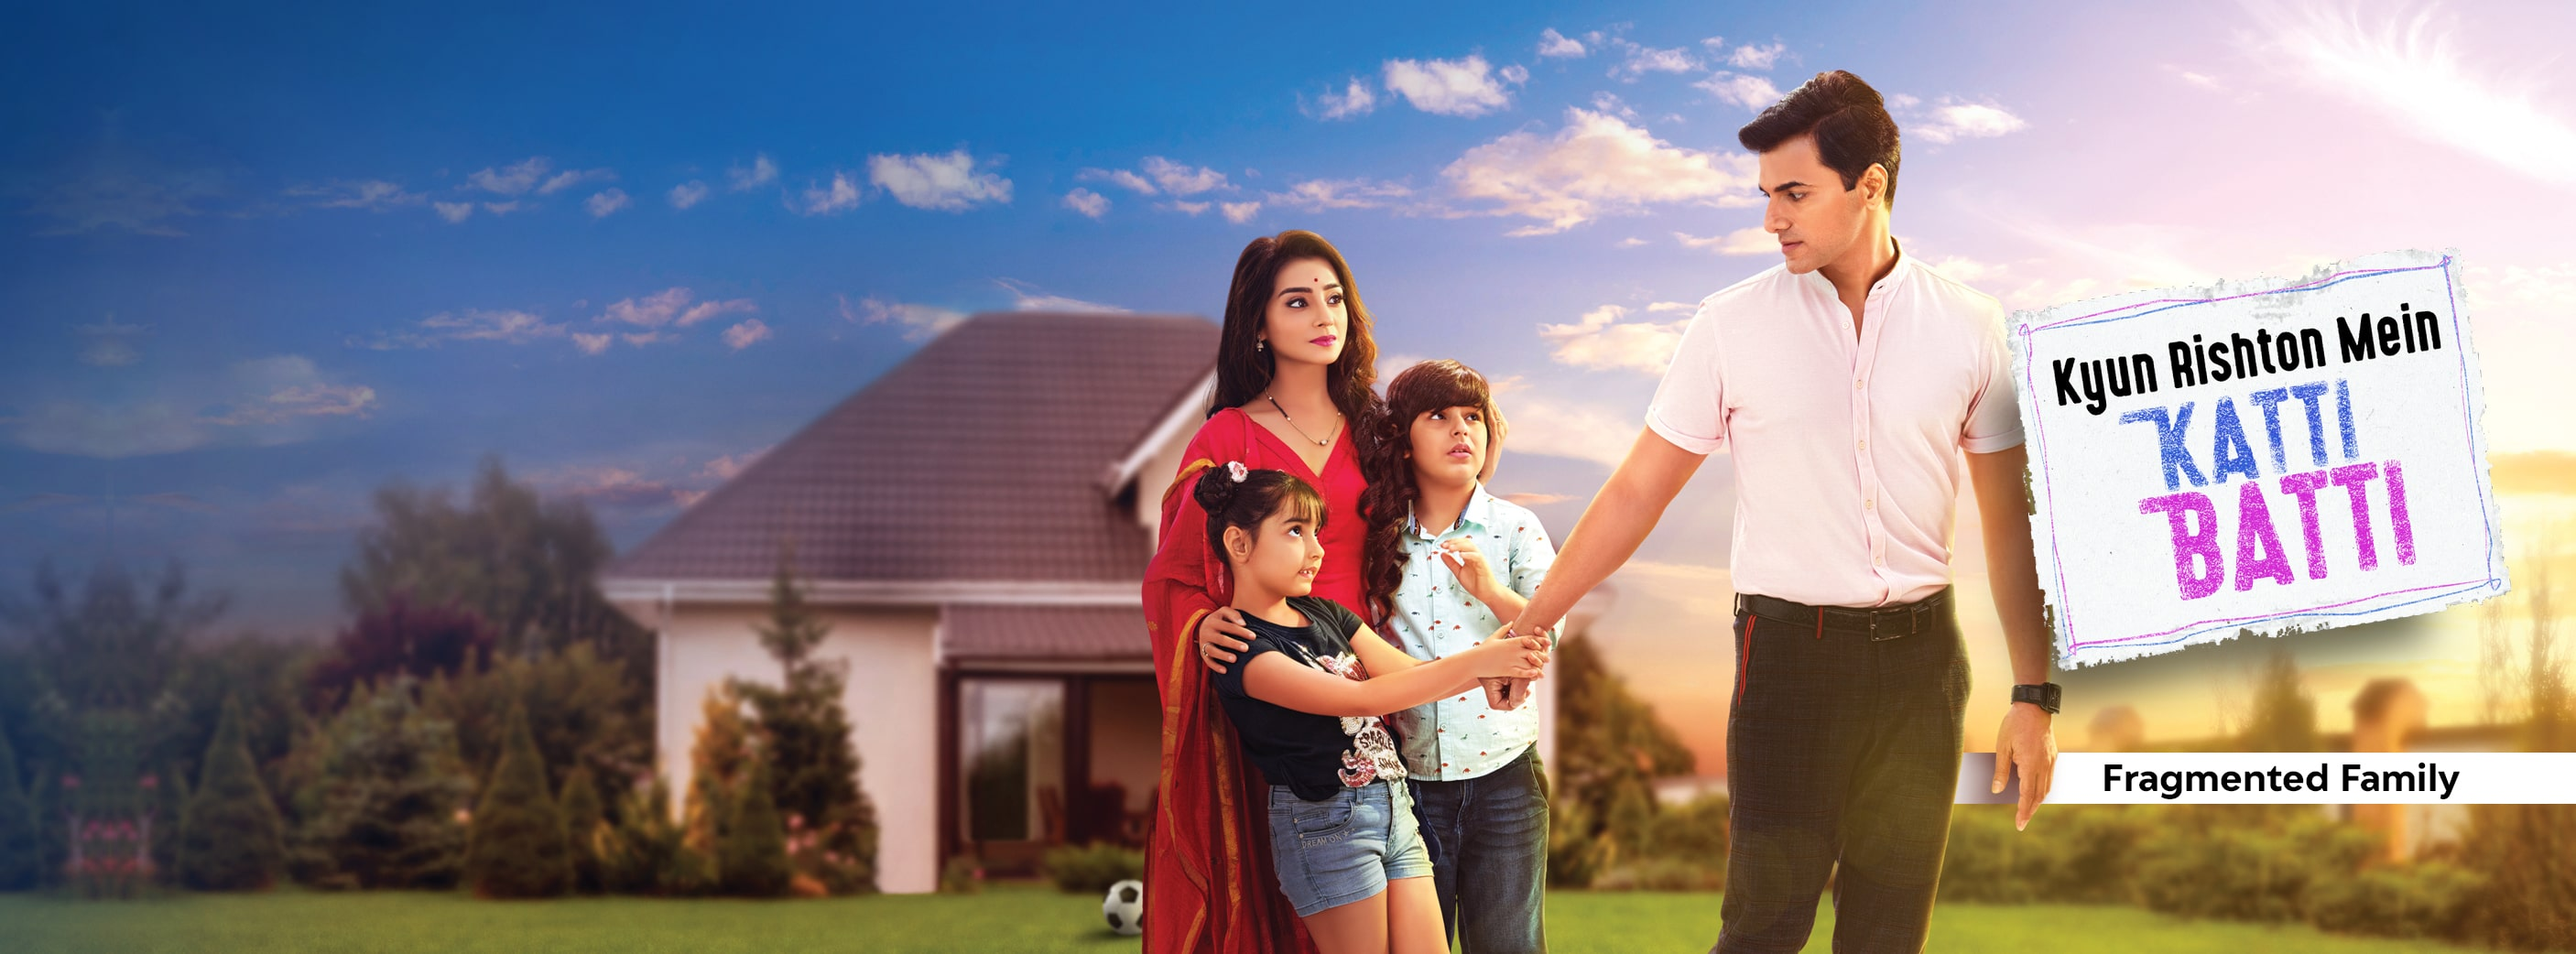 Kyun Rishton Mein Katti Batti is a Hindi family drama show that focusses on the lives of Shubhra, Kuldeep and their kids, Roli and Rishi. After 10 years of marriage, cracks begin to develop in Shubhra and Kuldeep's relationship. Will Rishi and Roli be able to erase the differences between their parents?